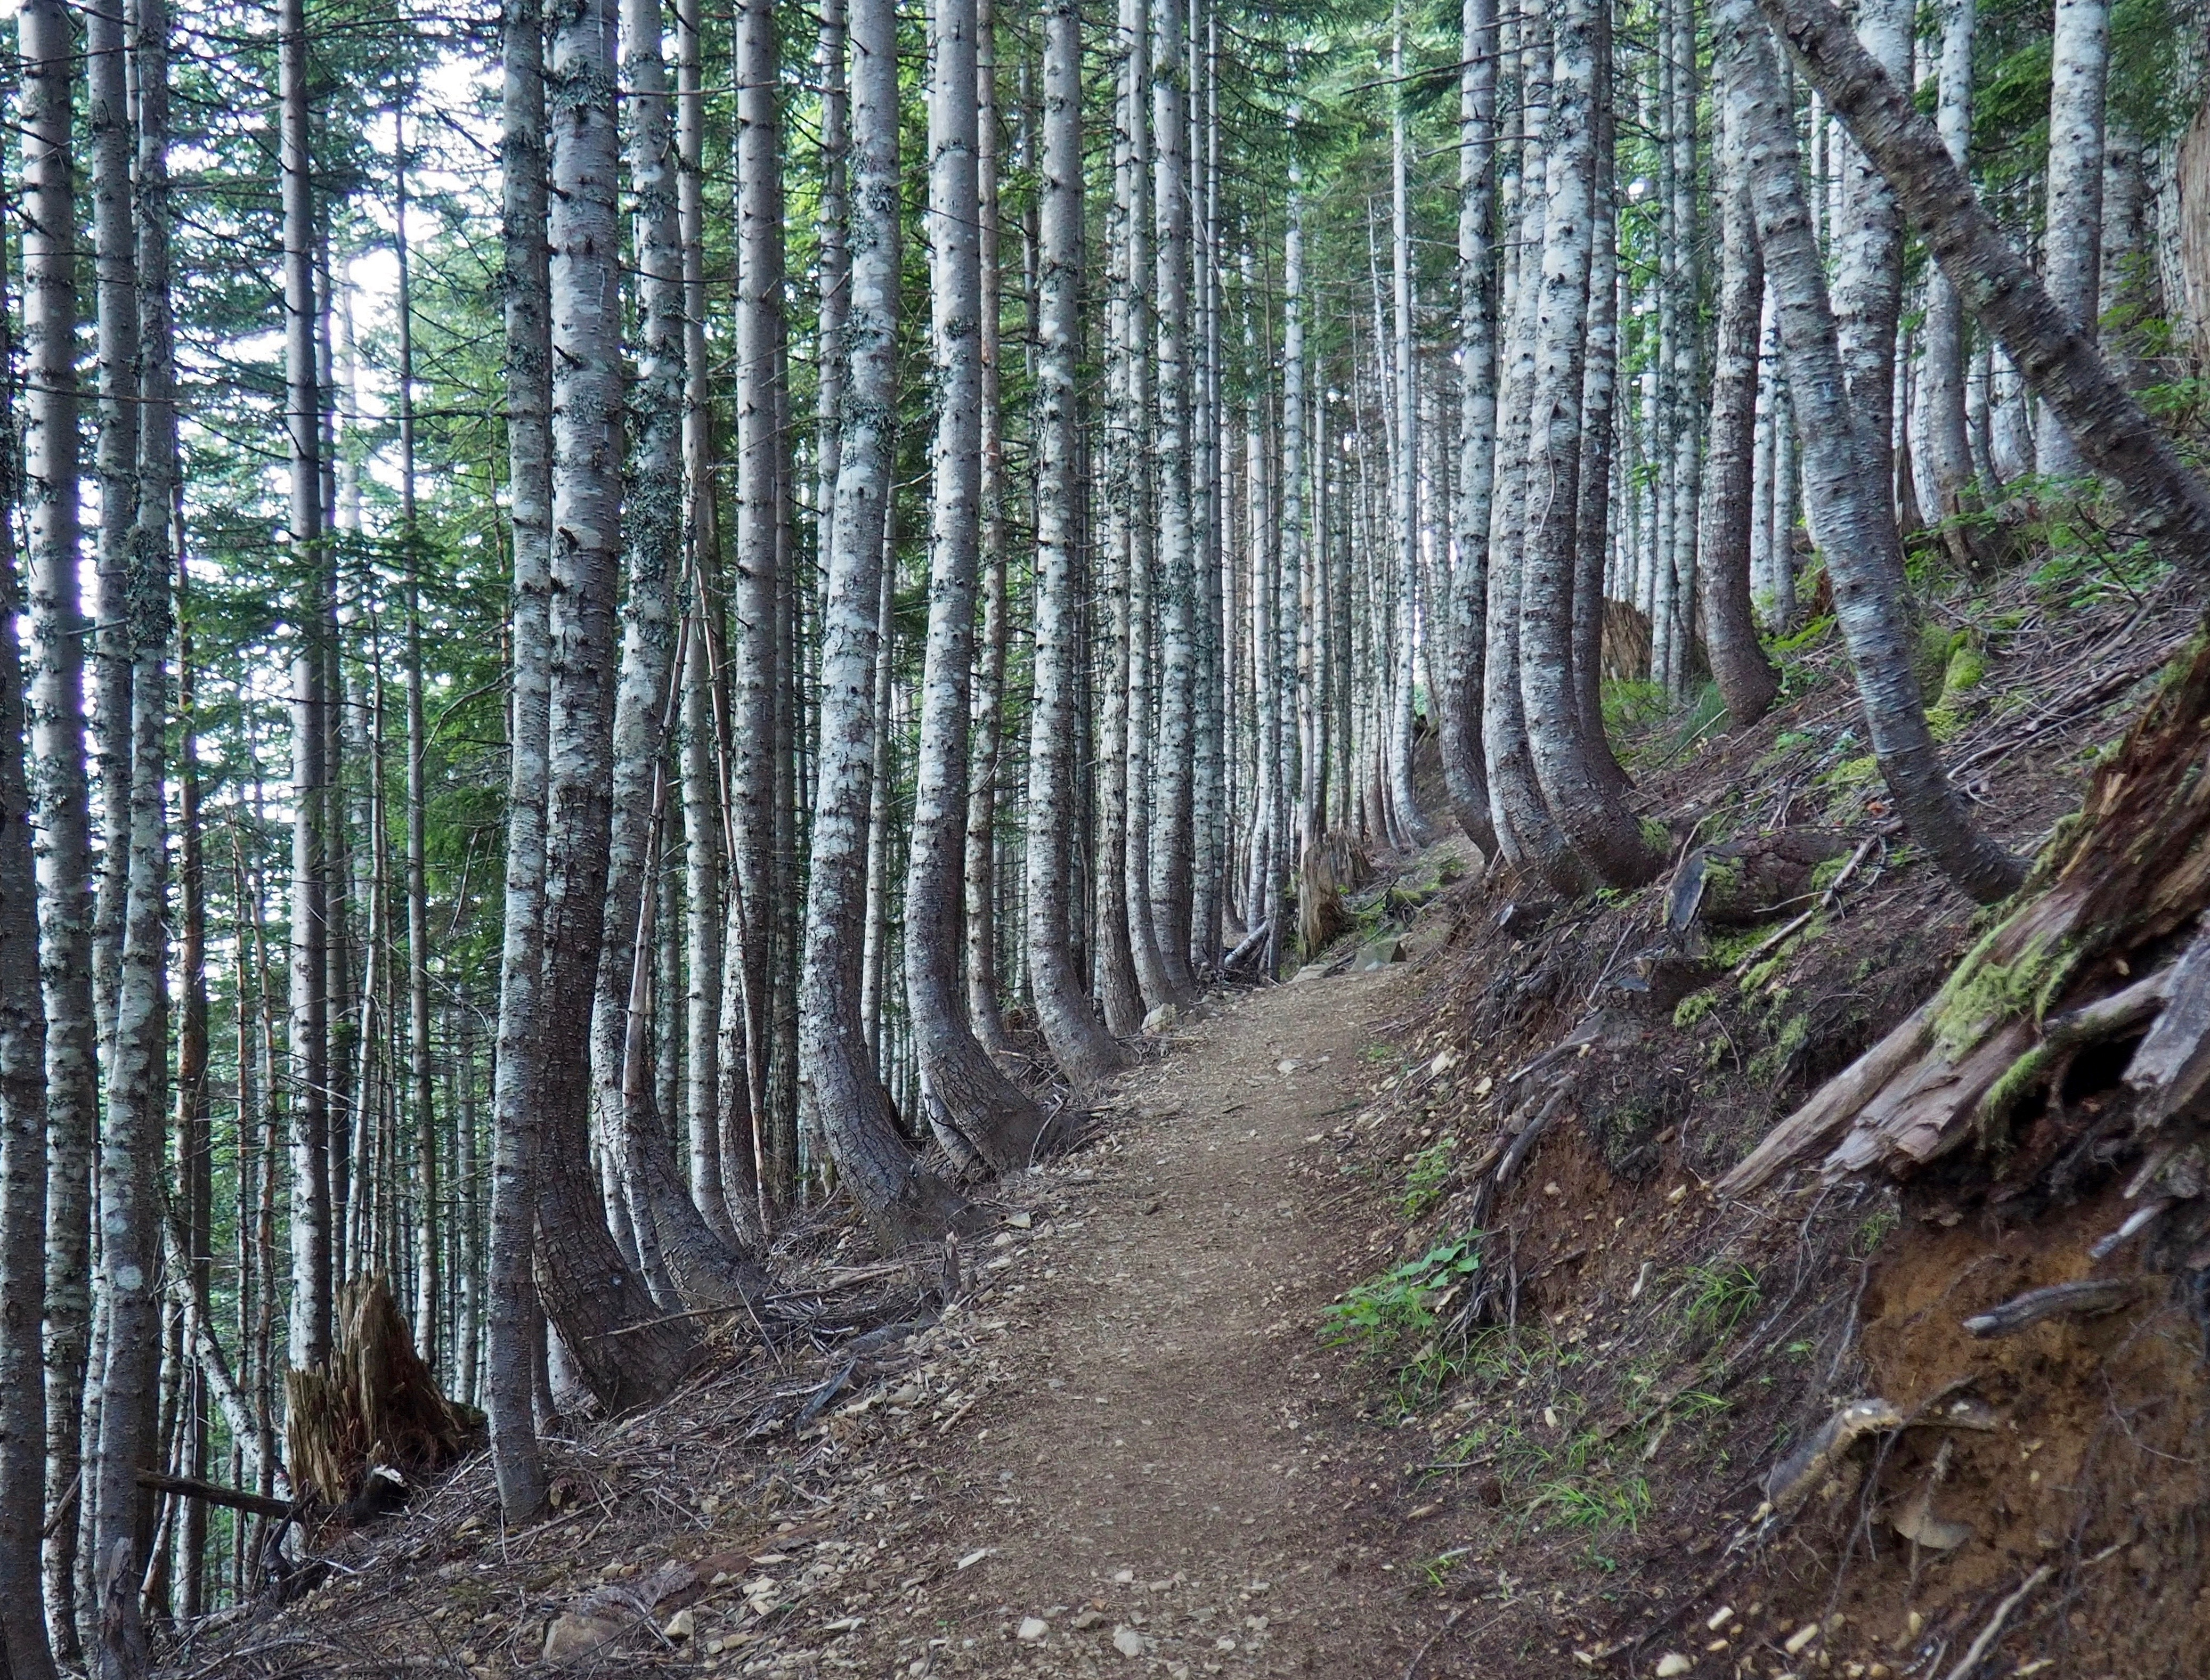 Just below the summit, forest again encloses the trail and slender tree trunks pinstripe the surrounding mountainside. Mount Washington Trail, July 26, 2016.